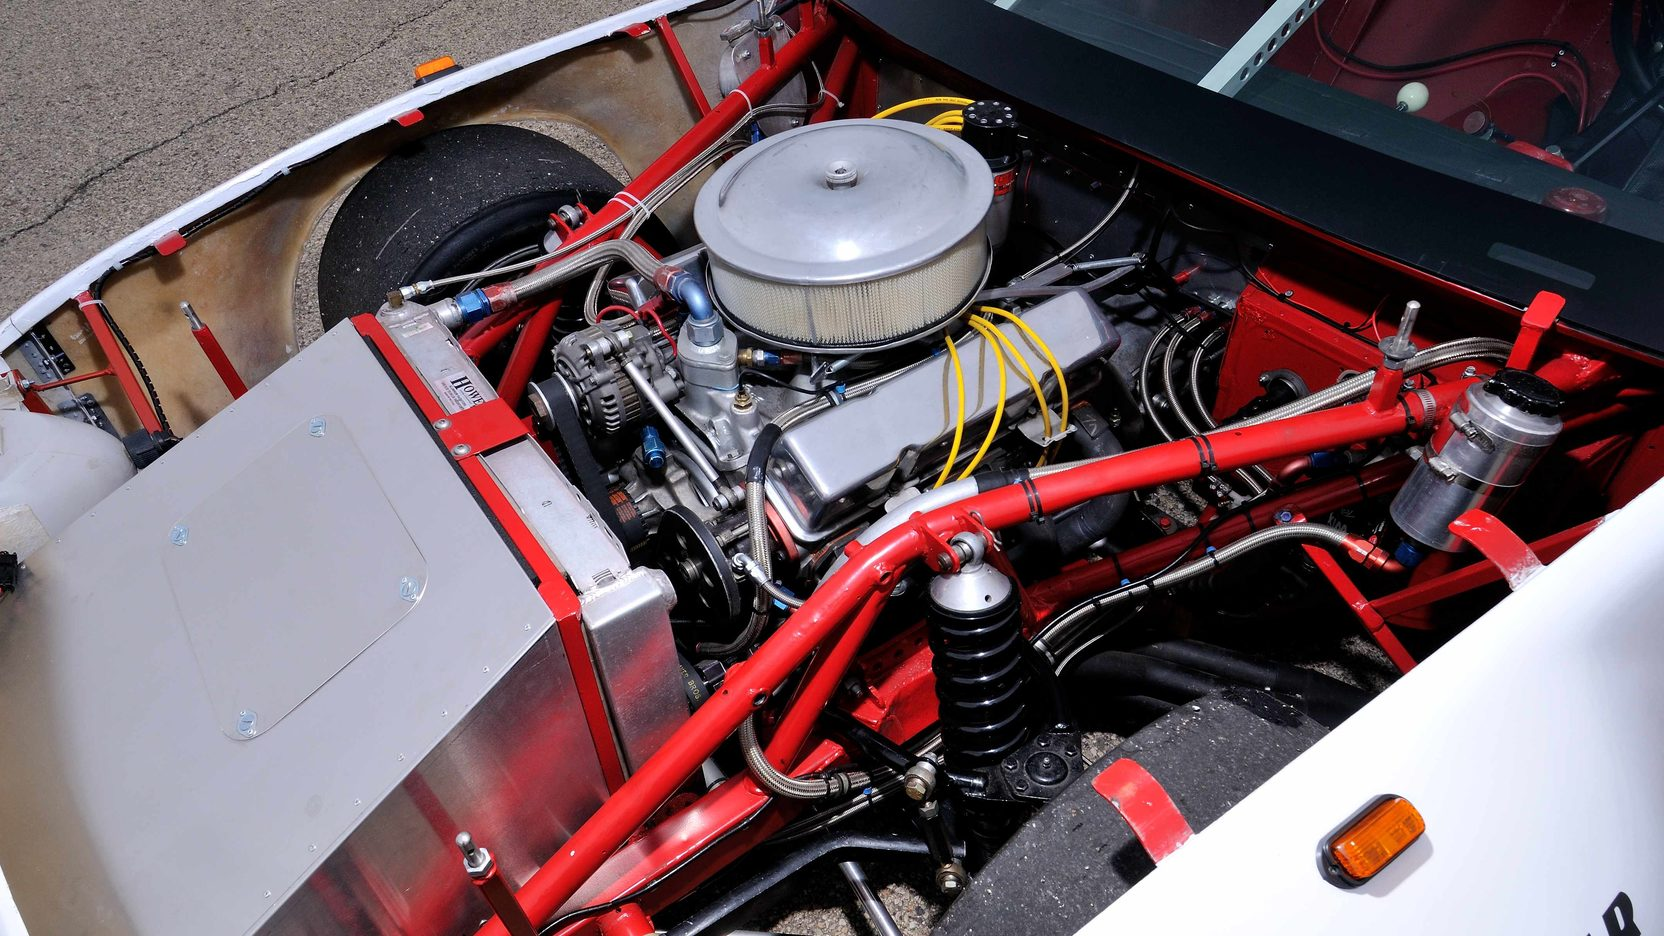 1982 Chevrolet Camaro Le Mans Race Car engine